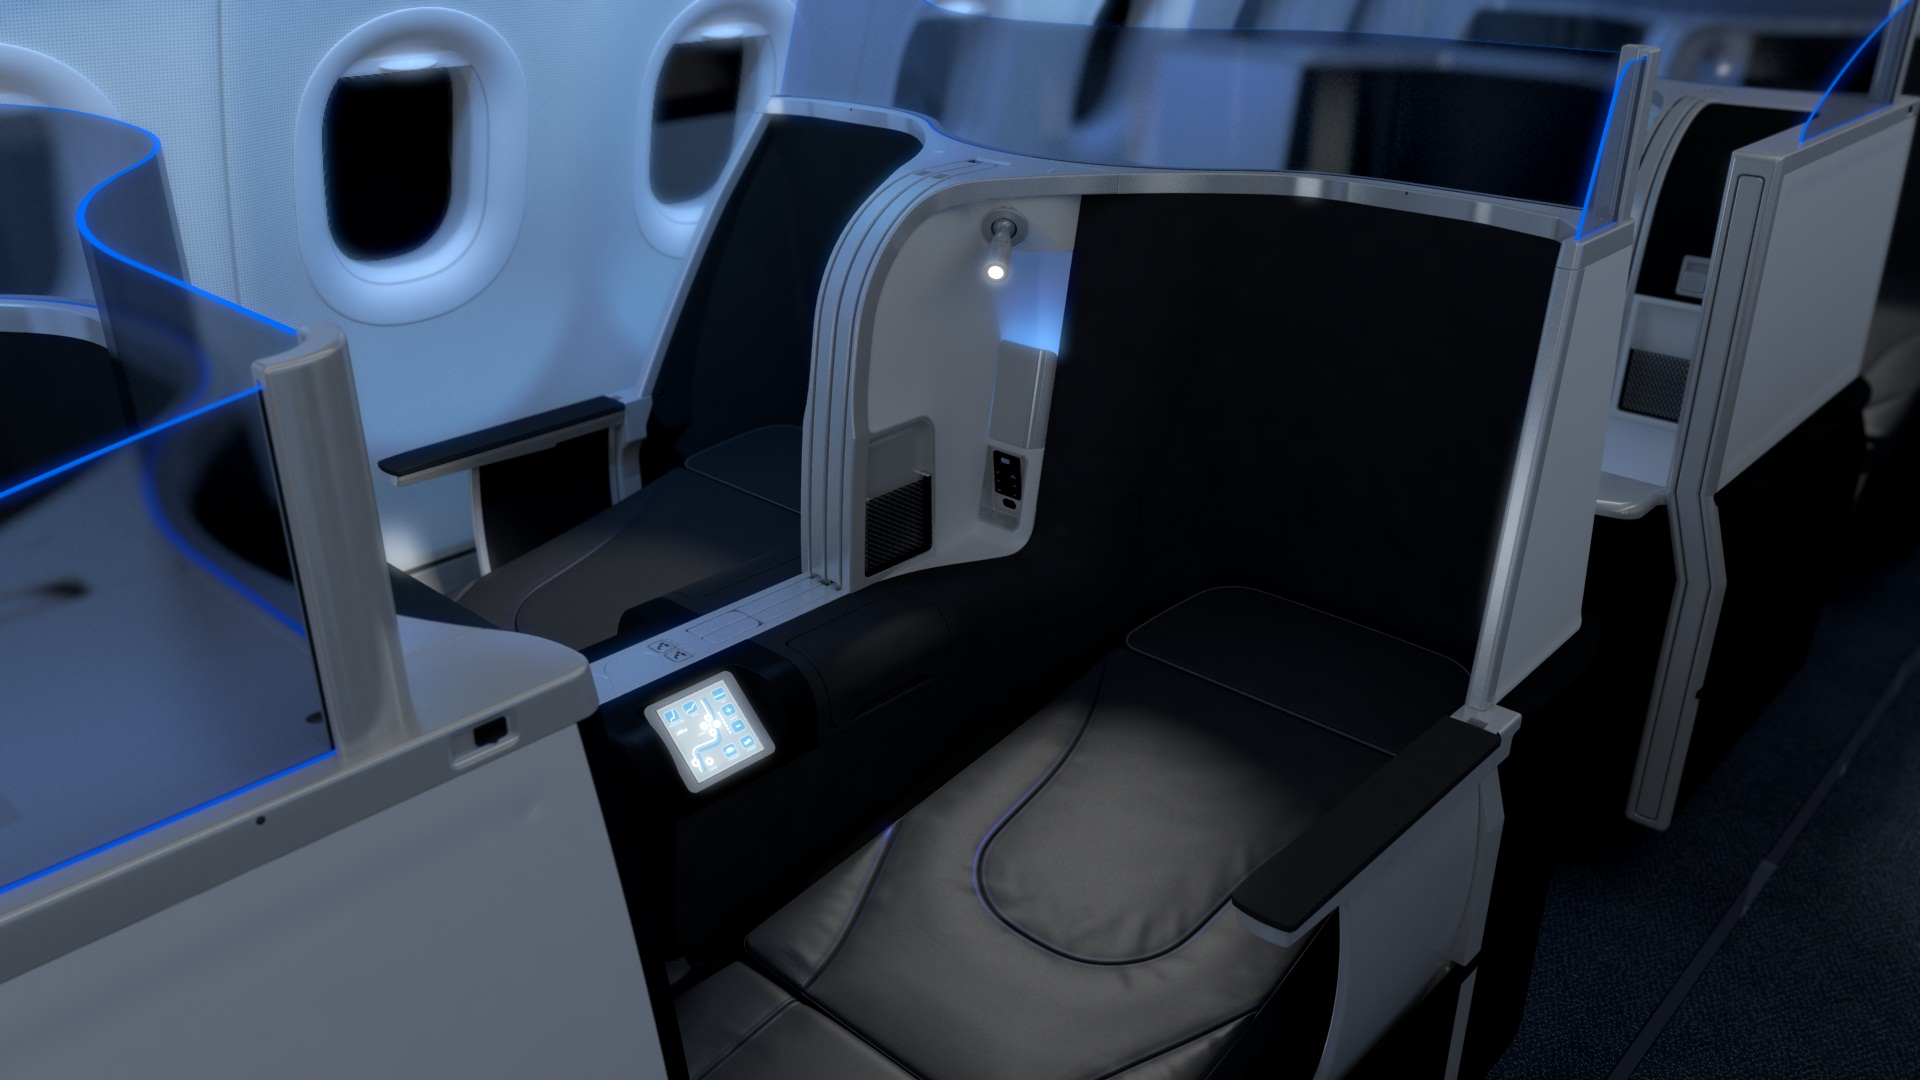 JetBlue's lie-flat seat.